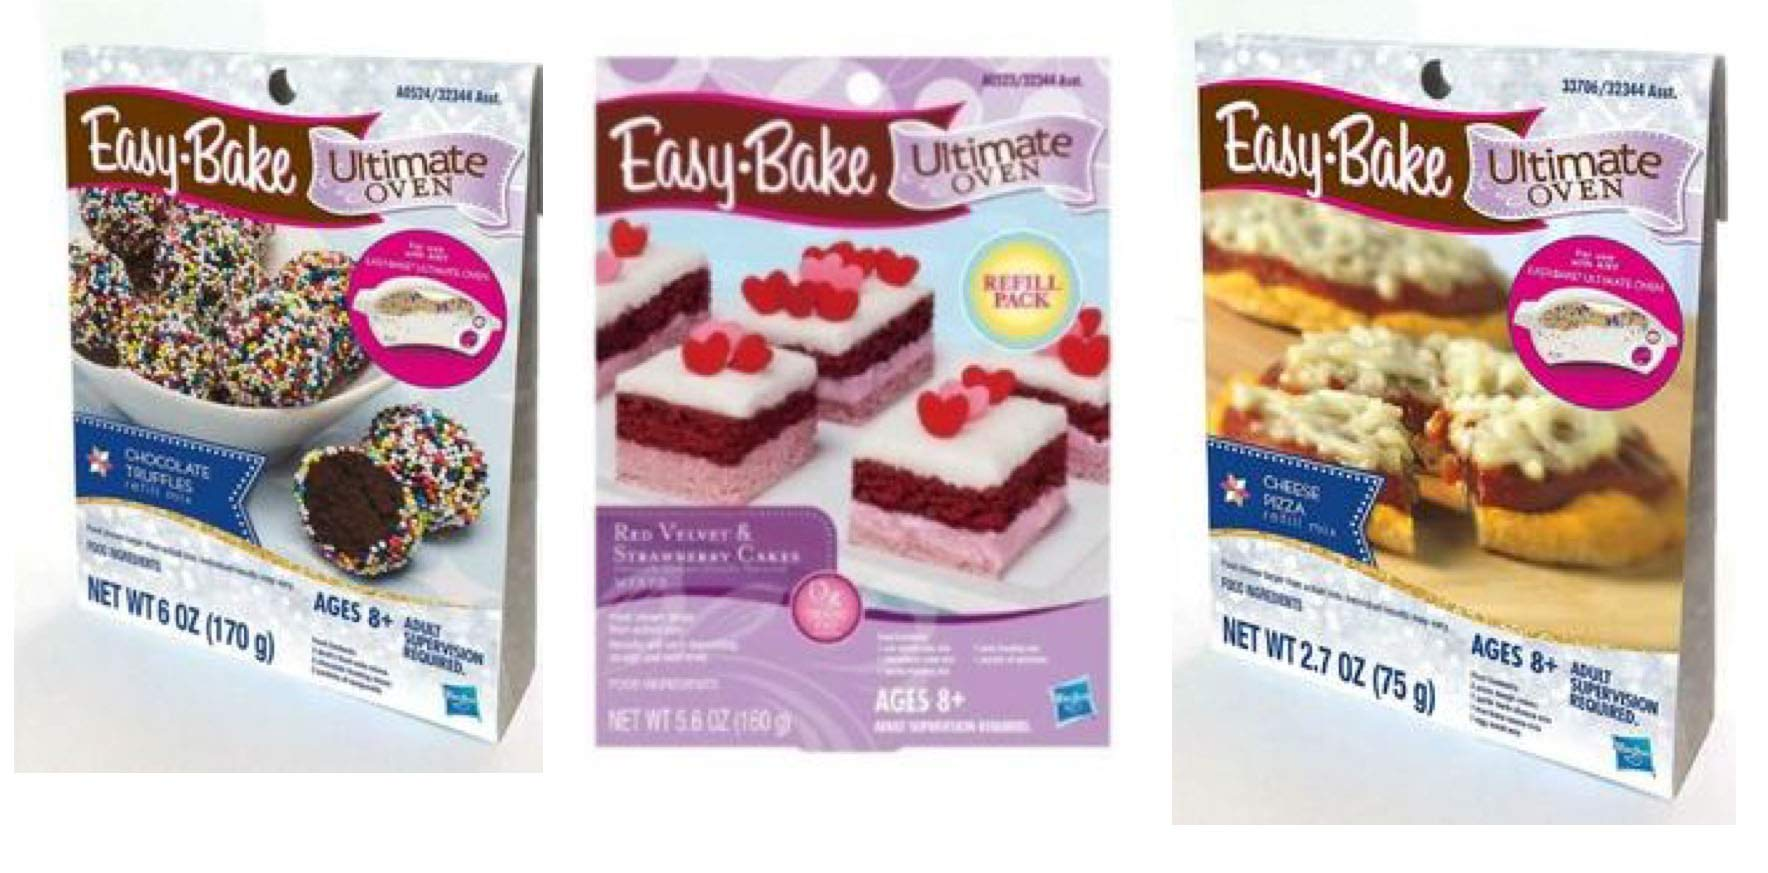 InterC Set of 3 Easy-Bake Oven Mixes Refills , one Each: Pizza, Chocolate Truffles, Red Velvet & Strawberry Cakes by InterC